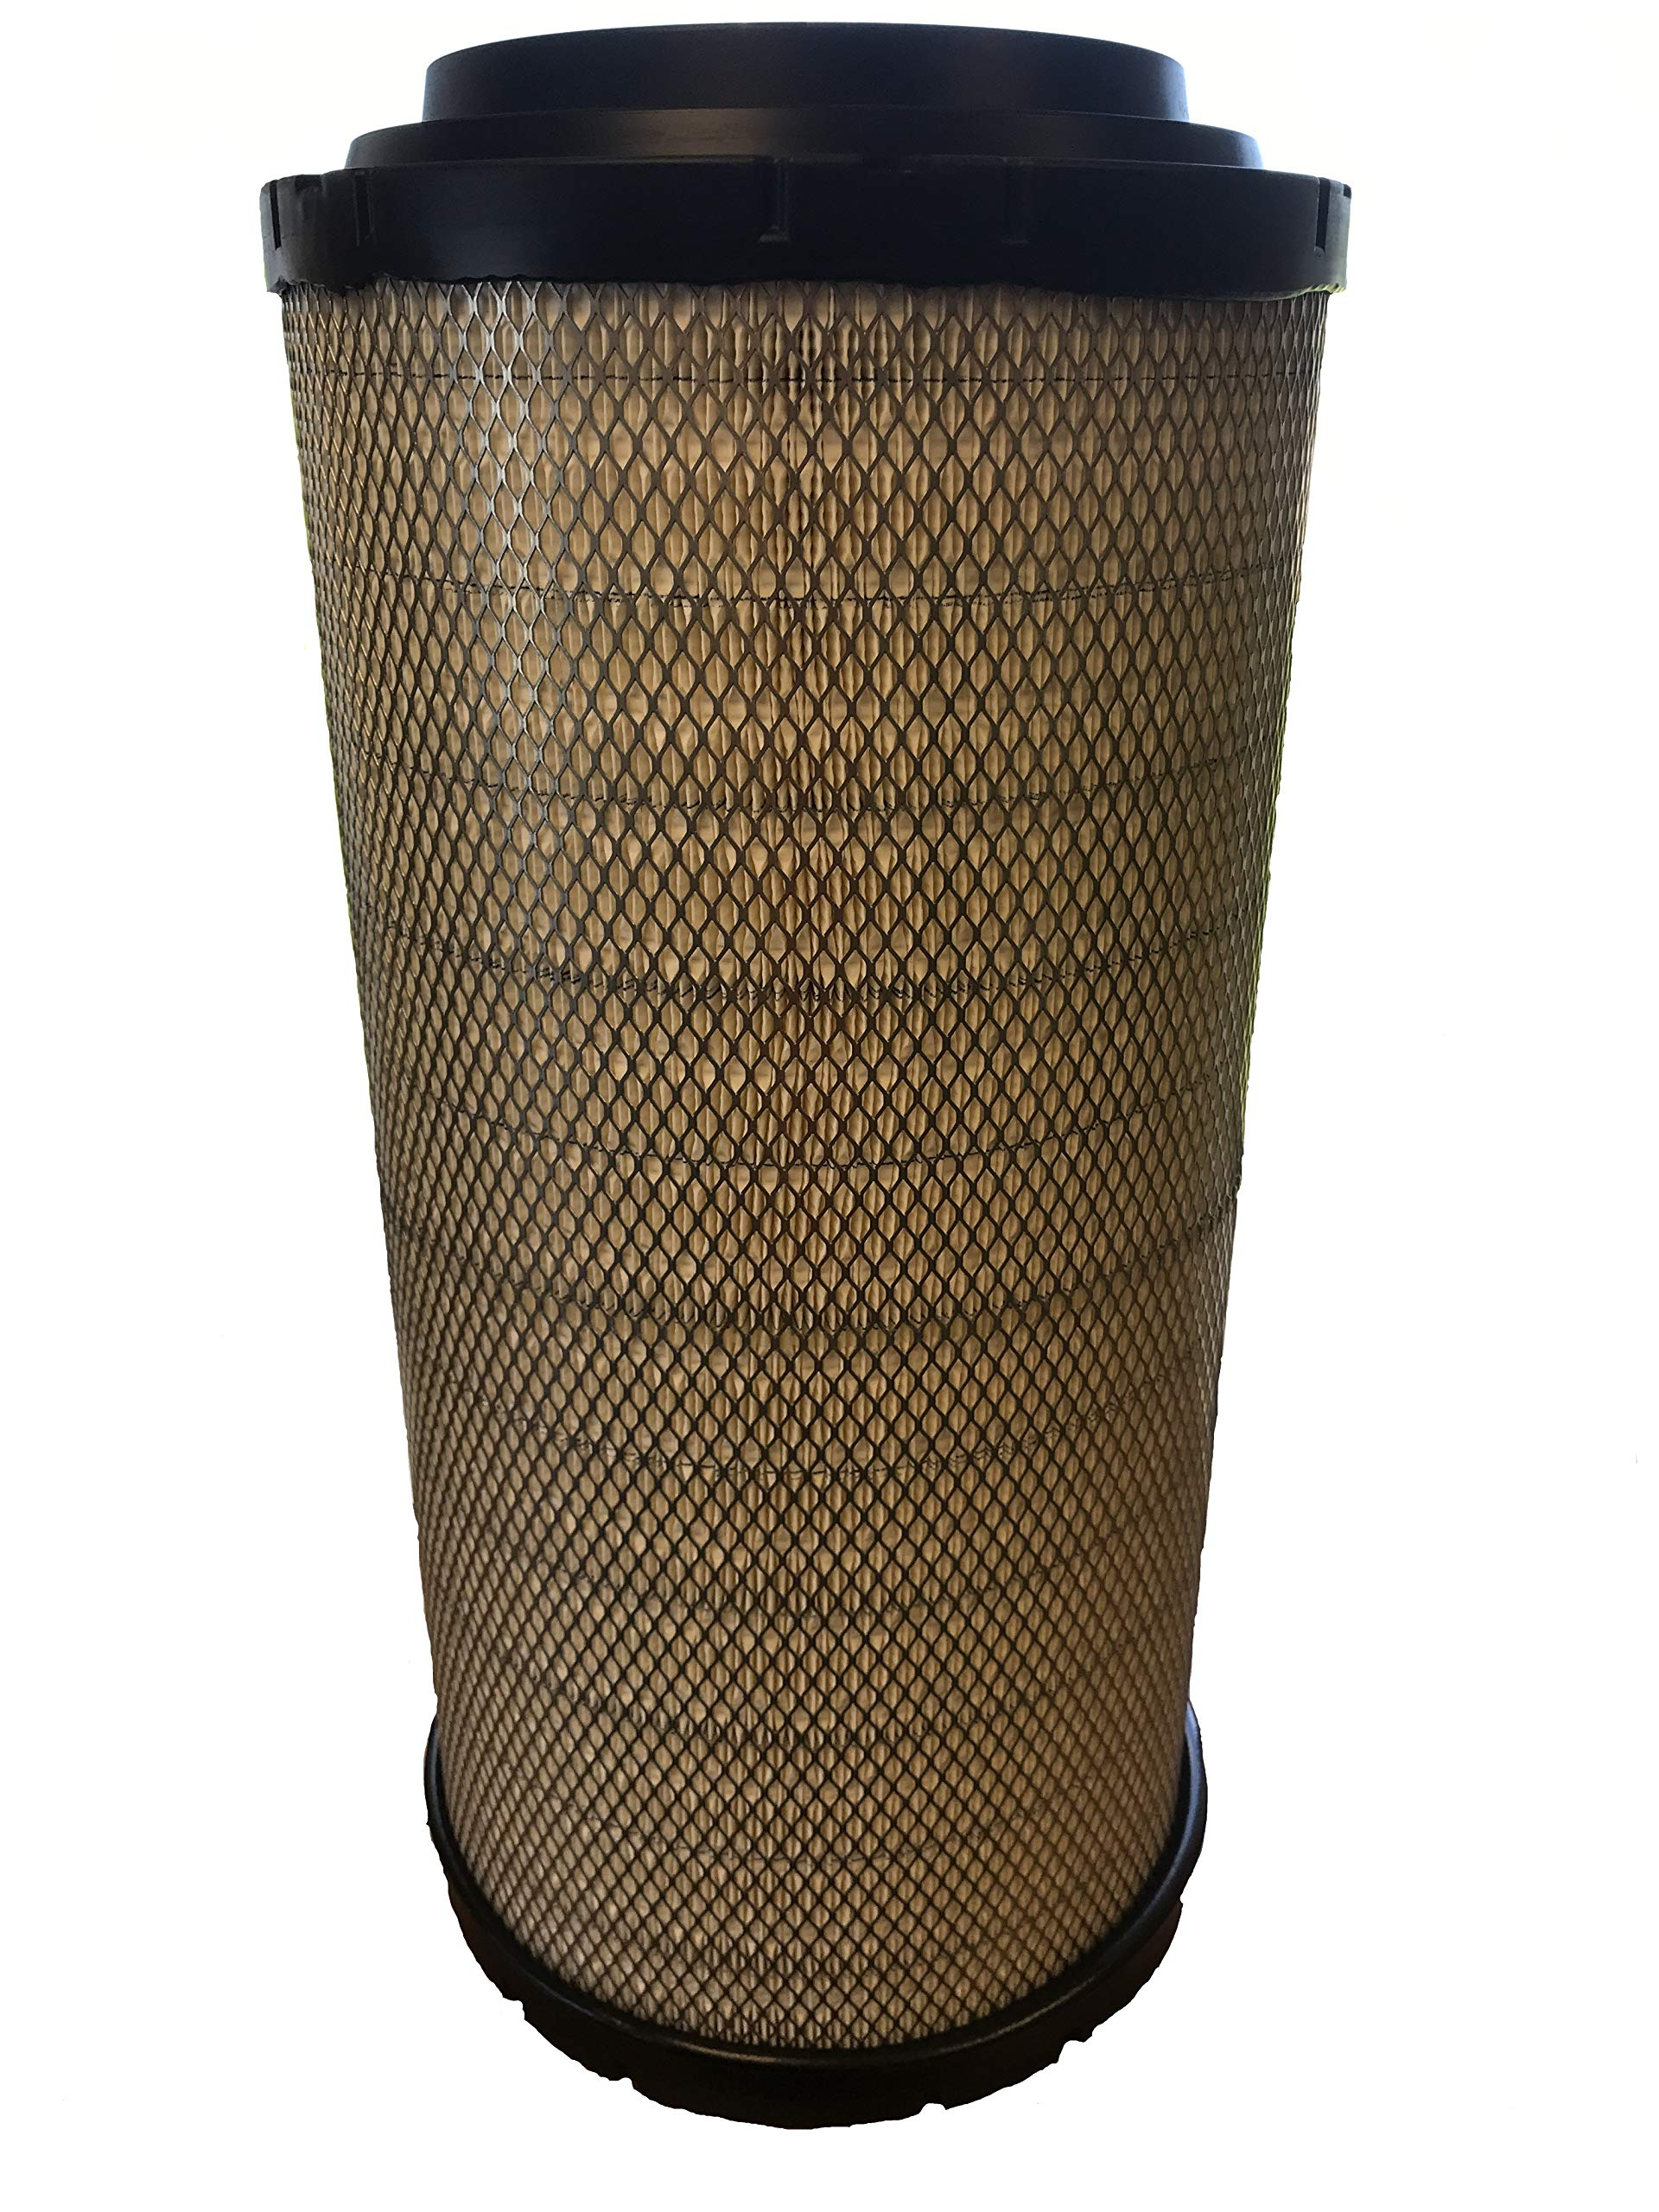 Luber-finer LAF4556 Heavy Duty Air Filter